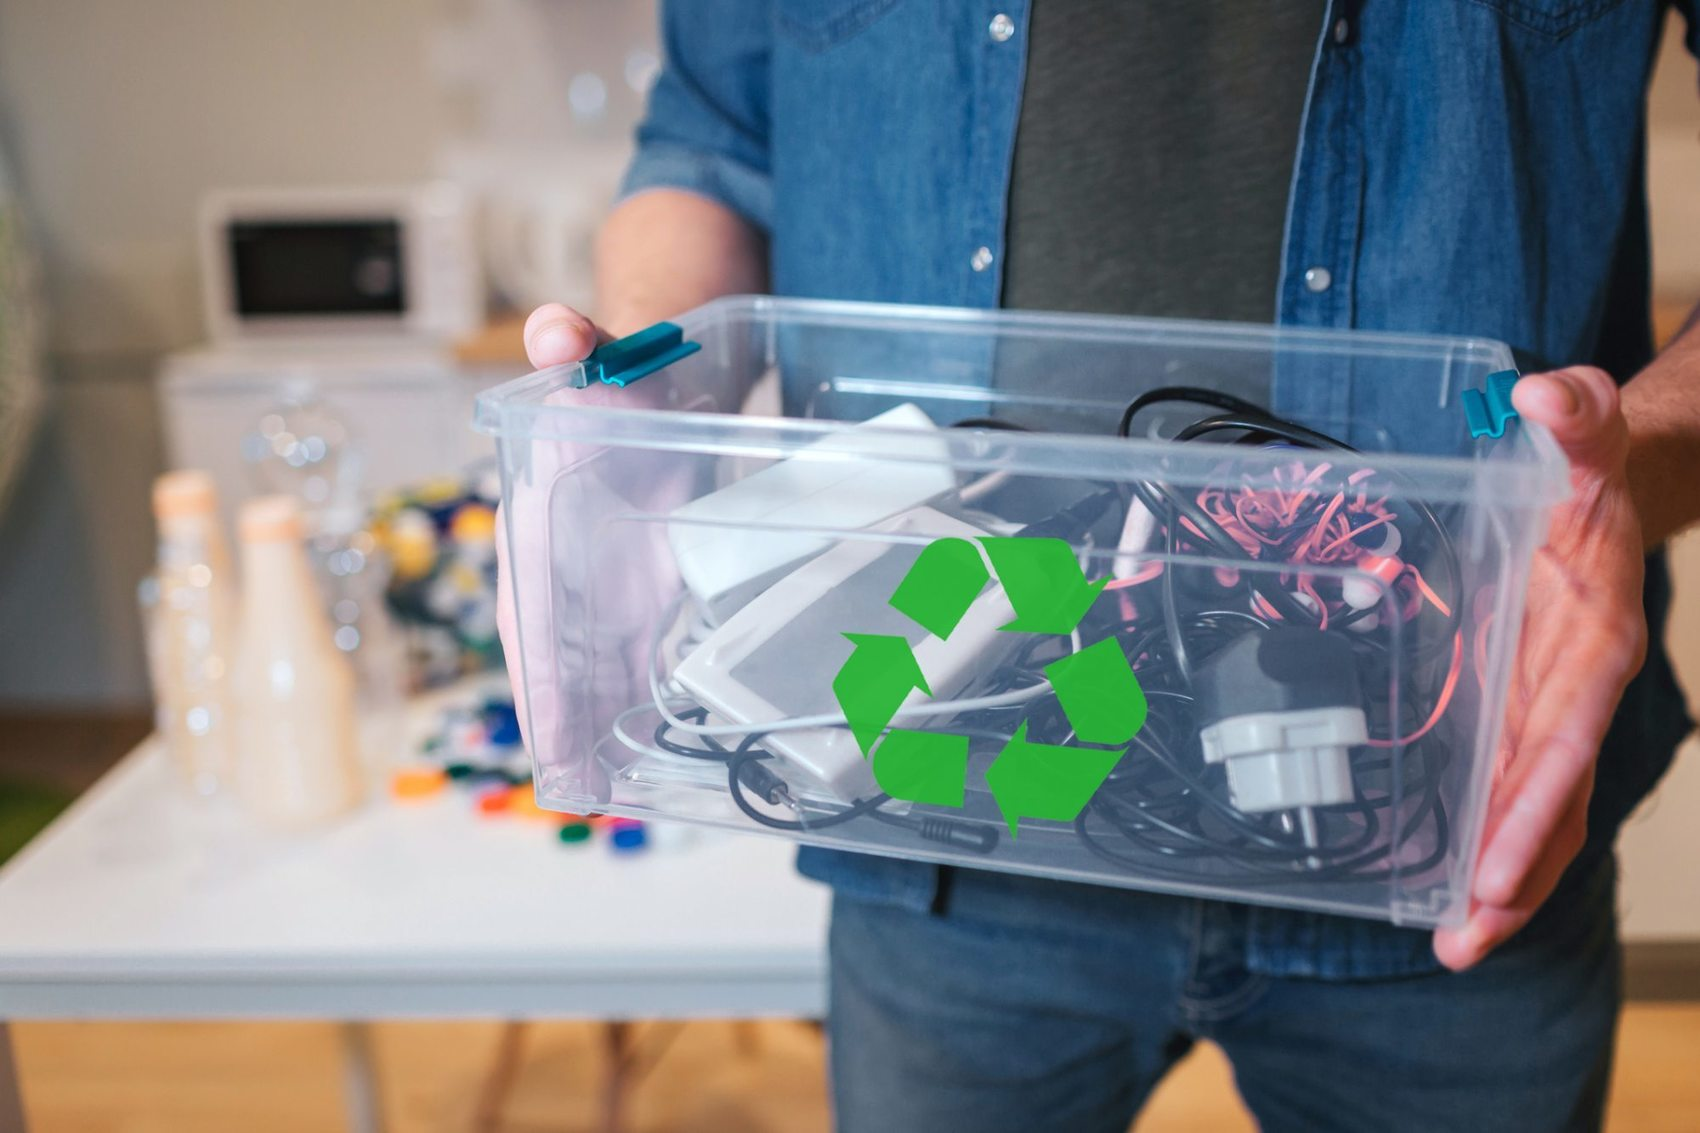 , Combating e-waste and the growing digital divide | An interview with the founder of Electronic Recycling Association | IT World Canada Blog, The Circular Economy, The Circular Economy